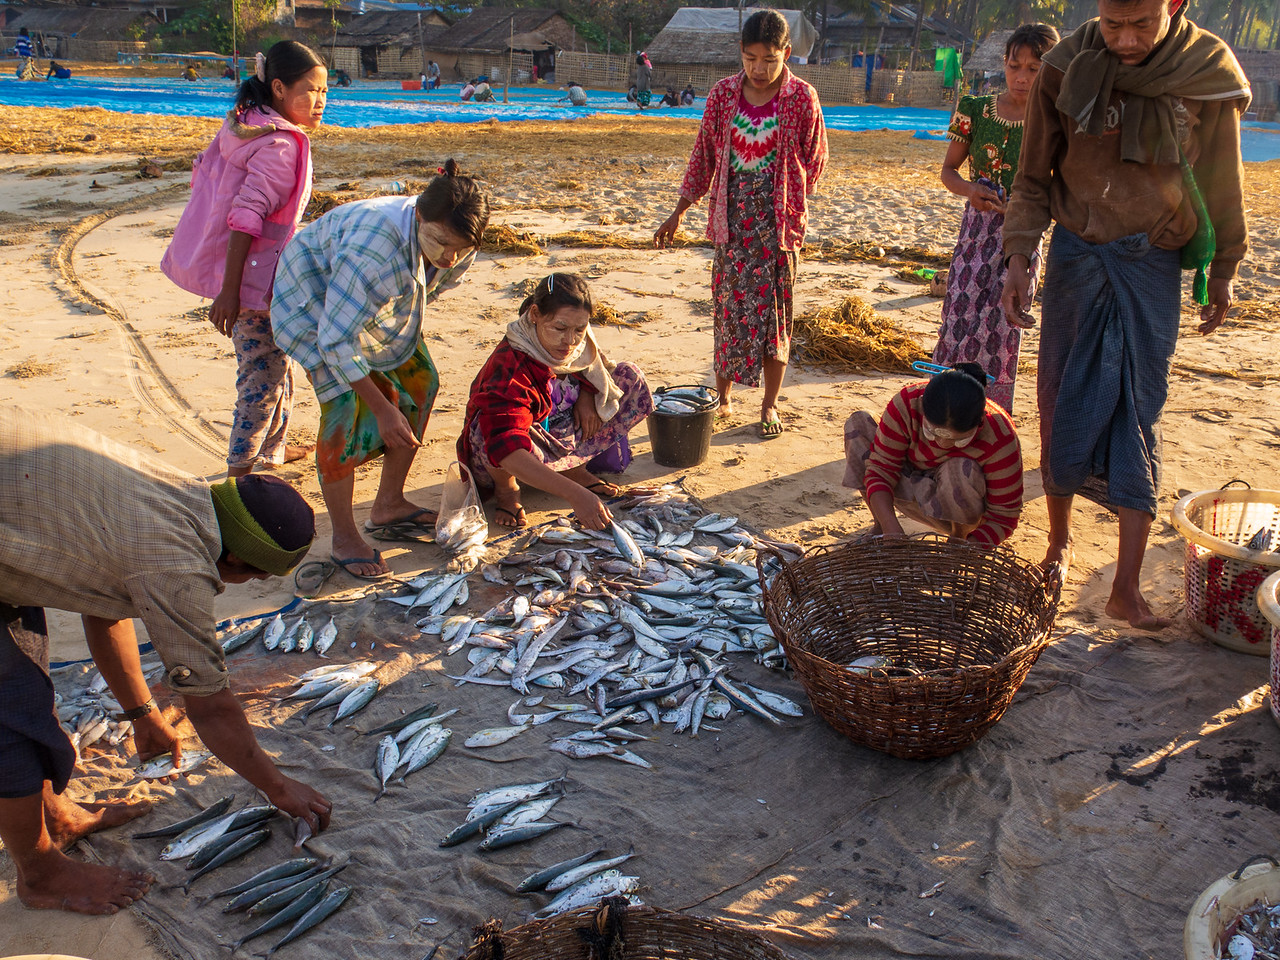 Images of a Myanmar Fishing Village